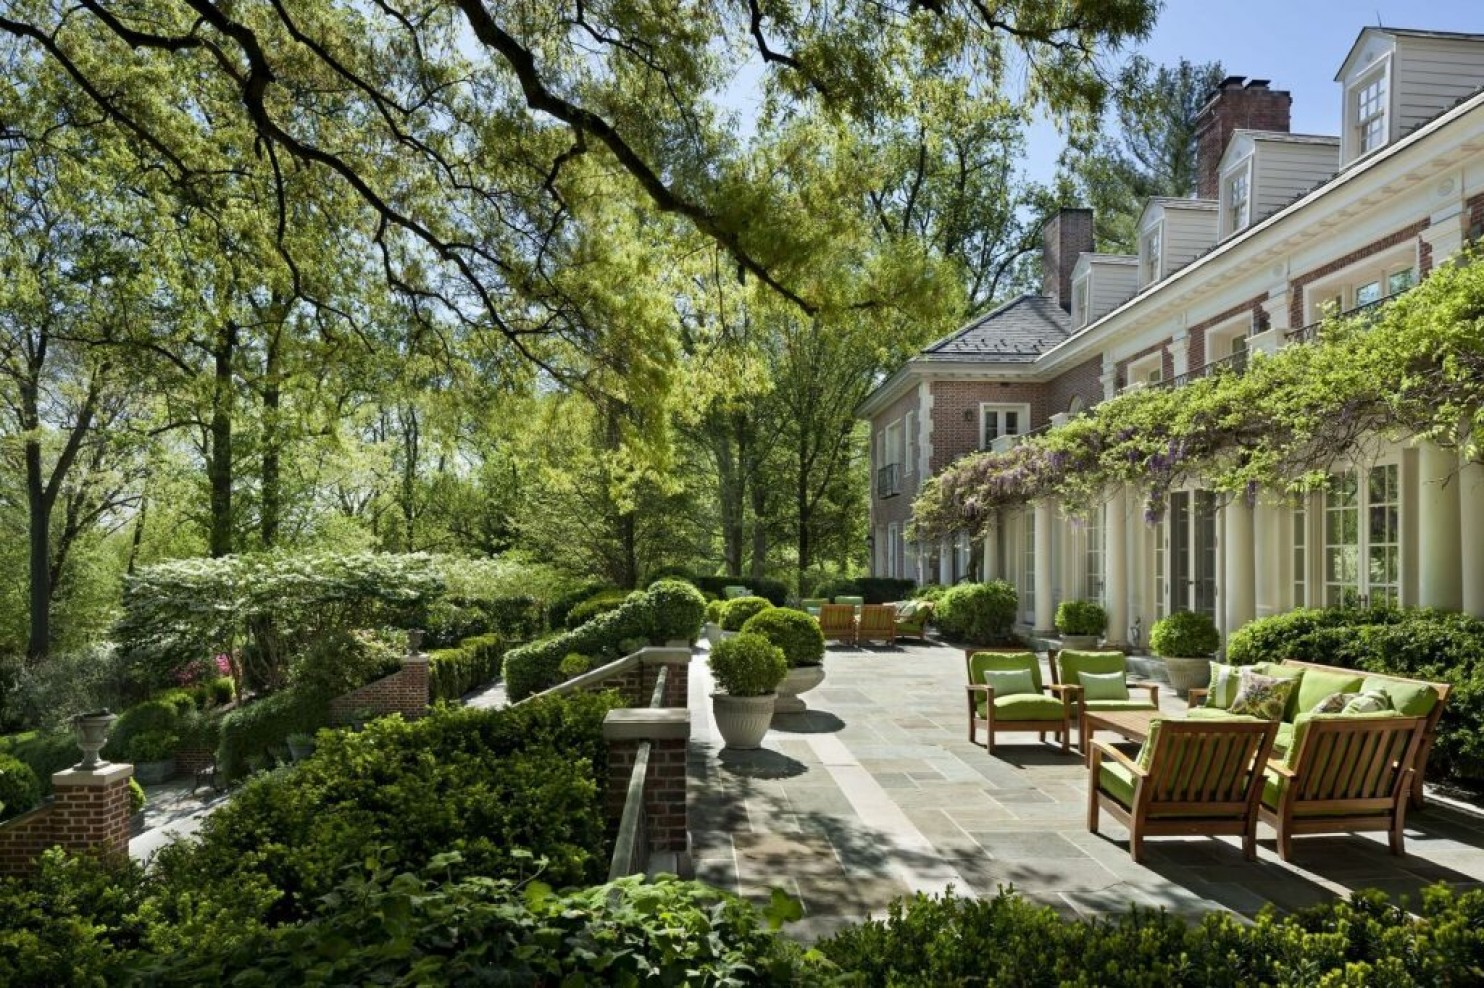 The childhood home of Jacqueline Kennedy Onassis has been put up for sale by its current owners. Their asking price: $49.5 million. (TTR Sotheby's International Realty)